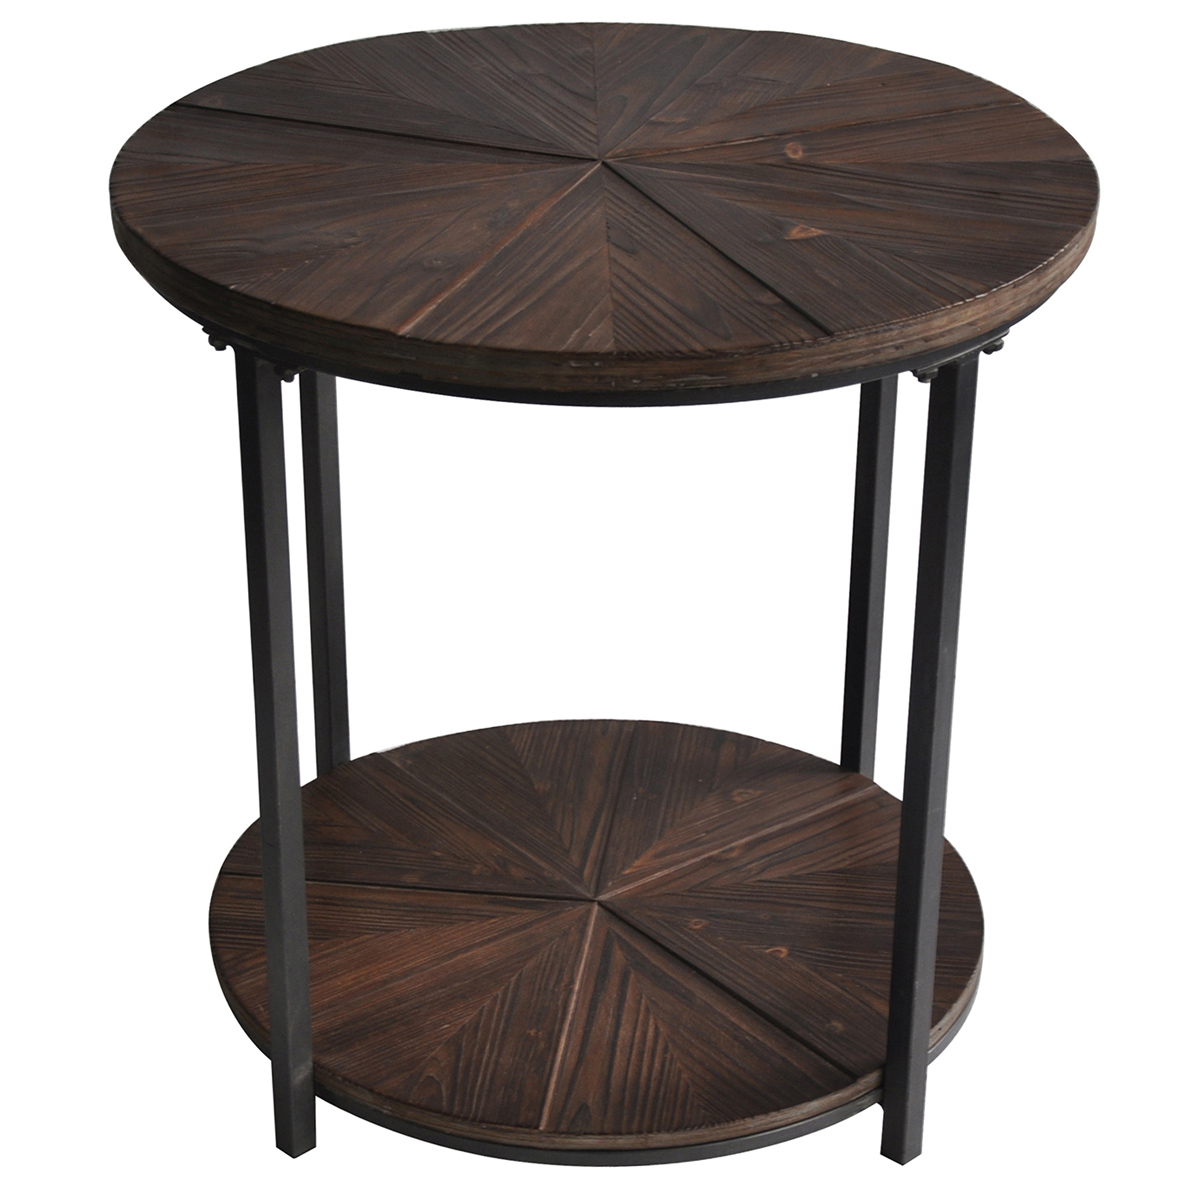 jackson round metal and rustic wood end table pedestal lamp small accent tables under sofa pottery barn desk outdoor farmhouse ashley home furniture clearance center shoe lamps